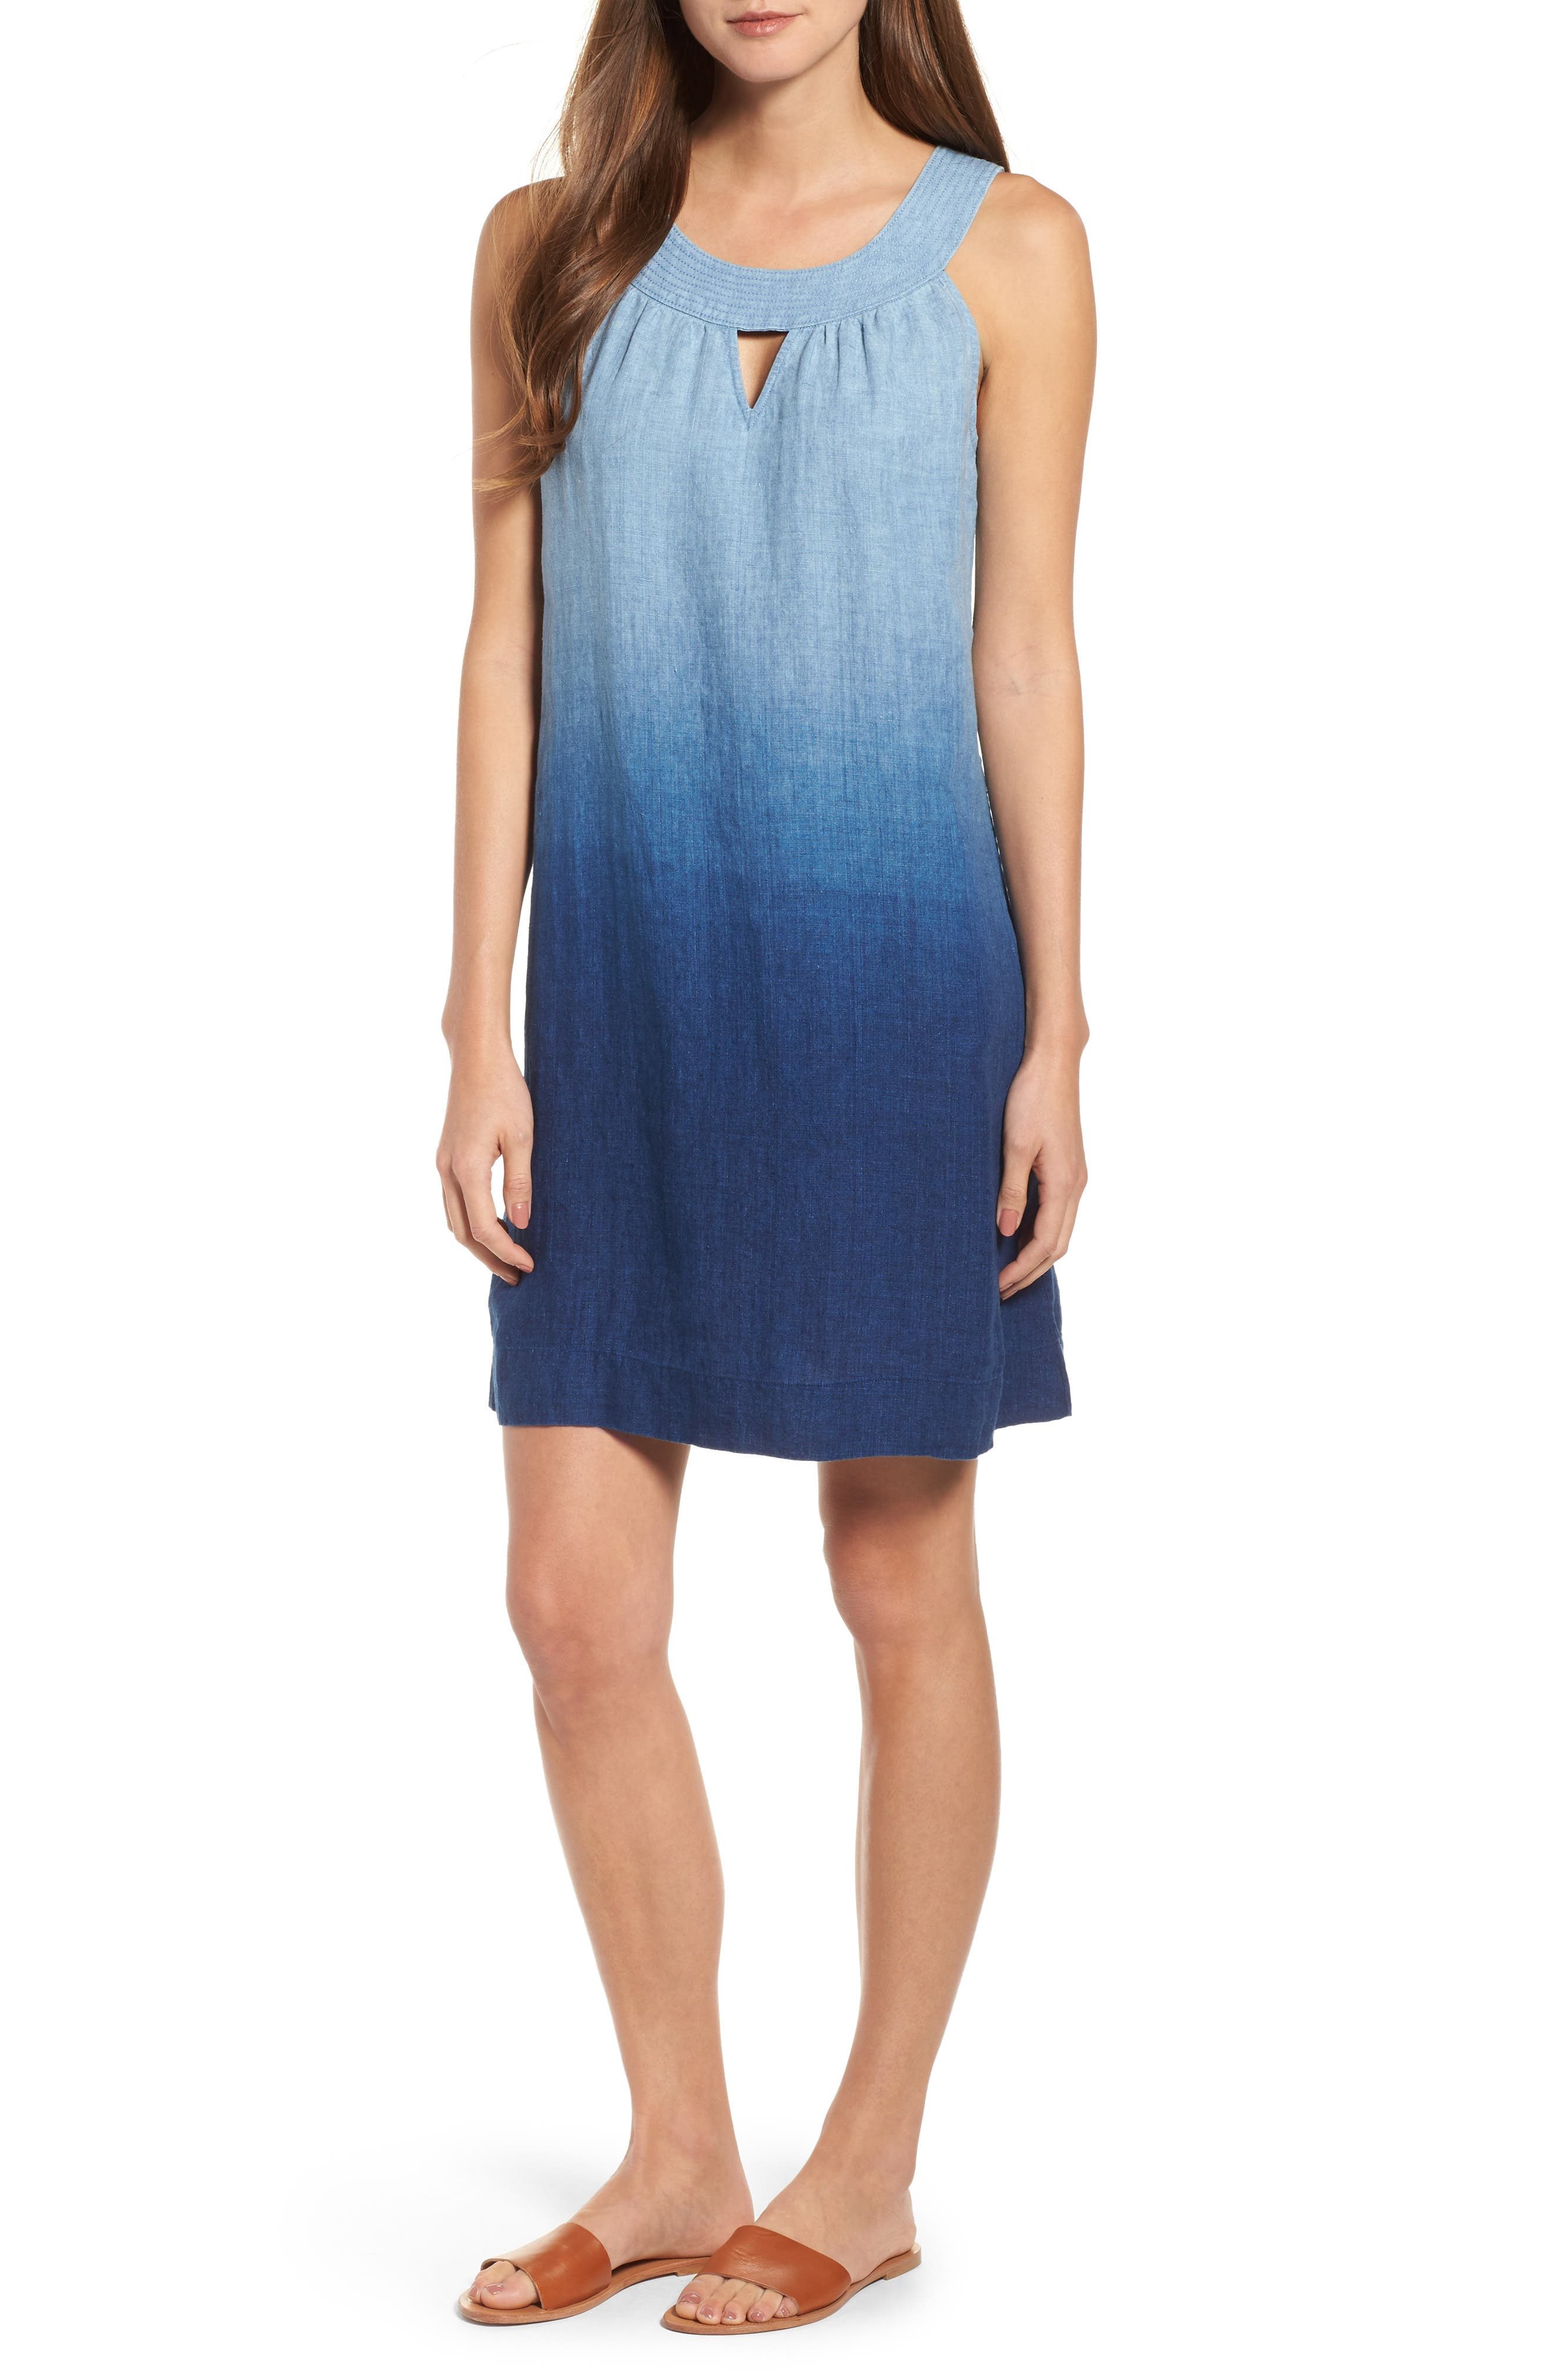 Indigo Dip Dyed Shift Dress,                         Main,                         color,